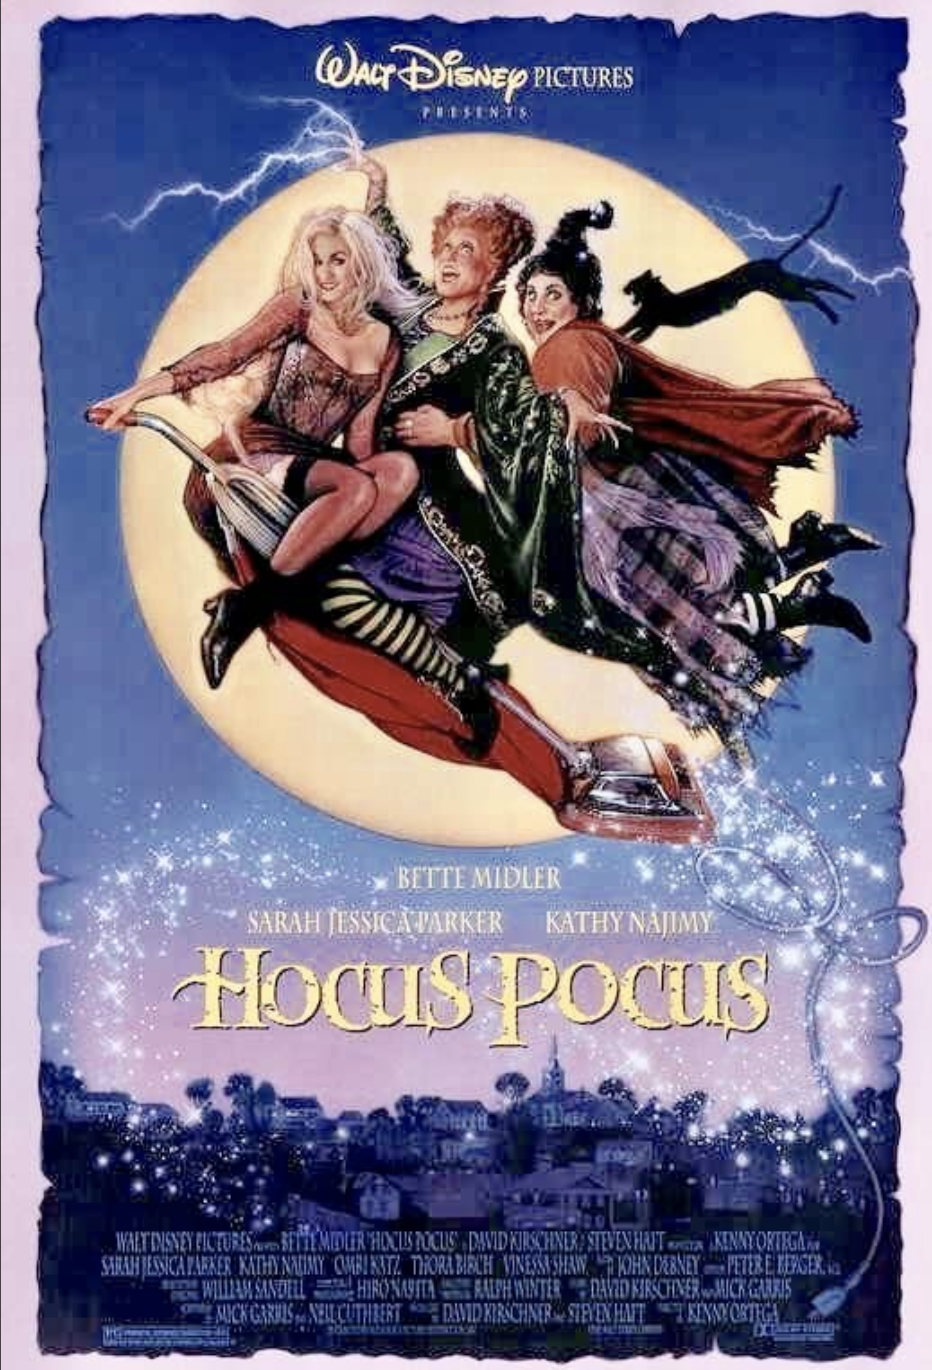 """<p><a class=""""link rapid-noclick-resp"""" href=""""https://go.redirectingat.com?id=74968X1596630&url=https%3A%2F%2Fwww.disneyplus.com%2Fmovies%2Fhocus-pocus%2F2iCcYcGrx7qD&sref=https%3A%2F%2Fwww.womansday.com%2Flife%2Fentertainment%2Fg37644376%2Ffall-movies%2F"""" rel=""""nofollow noopener"""" target=""""_blank"""" data-ylk=""""slk:STREAM NOW"""">STREAM NOW</a></p><p>When a trio of witches is awakened on Halloween night, a group of kids are the town's only hope against their evil powers.</p>"""